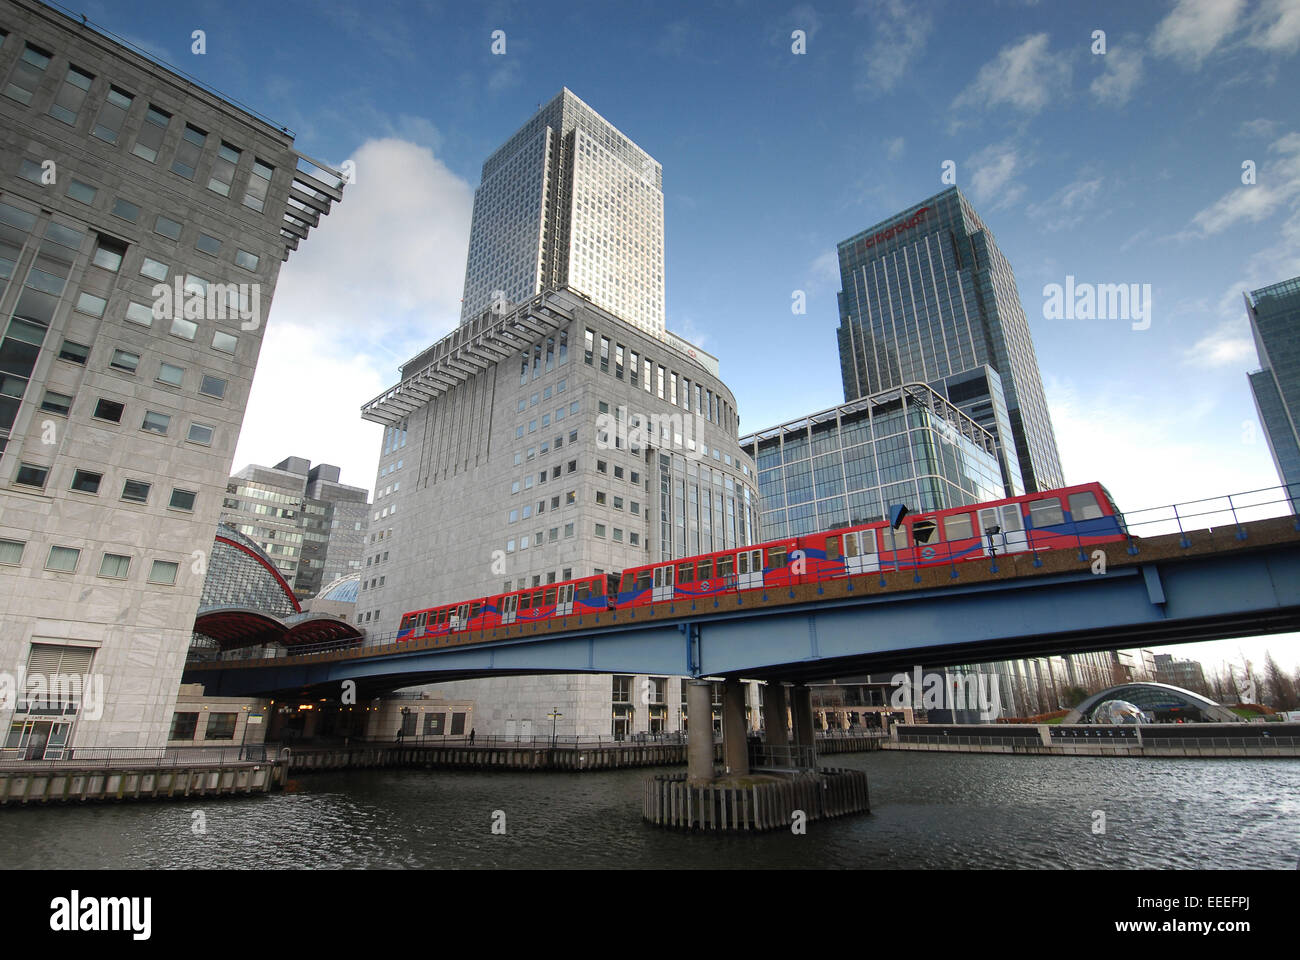 Le train DLR sur pont de chemin de fer dans les Docklands Photo Stock